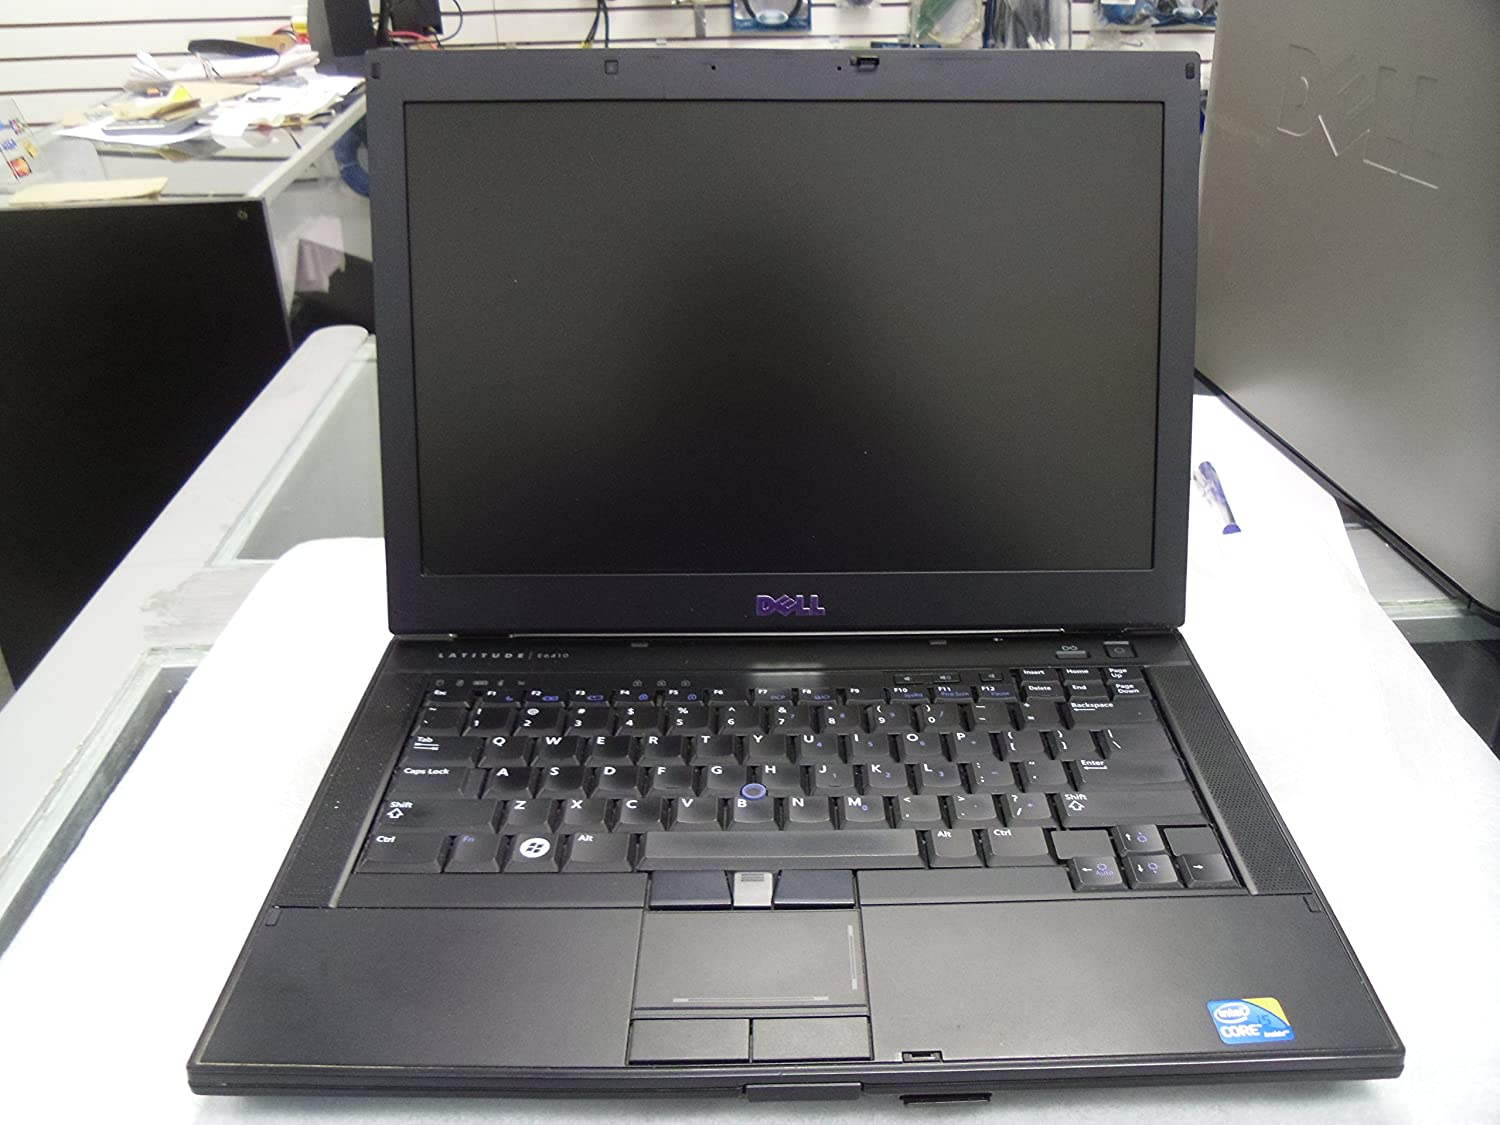 "Dell Latitude E6410 14.1"" Laptop with Intel Core i5 M 520@2.40GHz, 4GB RAM, 250GB HD and licensed Windows 7 Professional from a Microsoft Authorized Refurbisher"